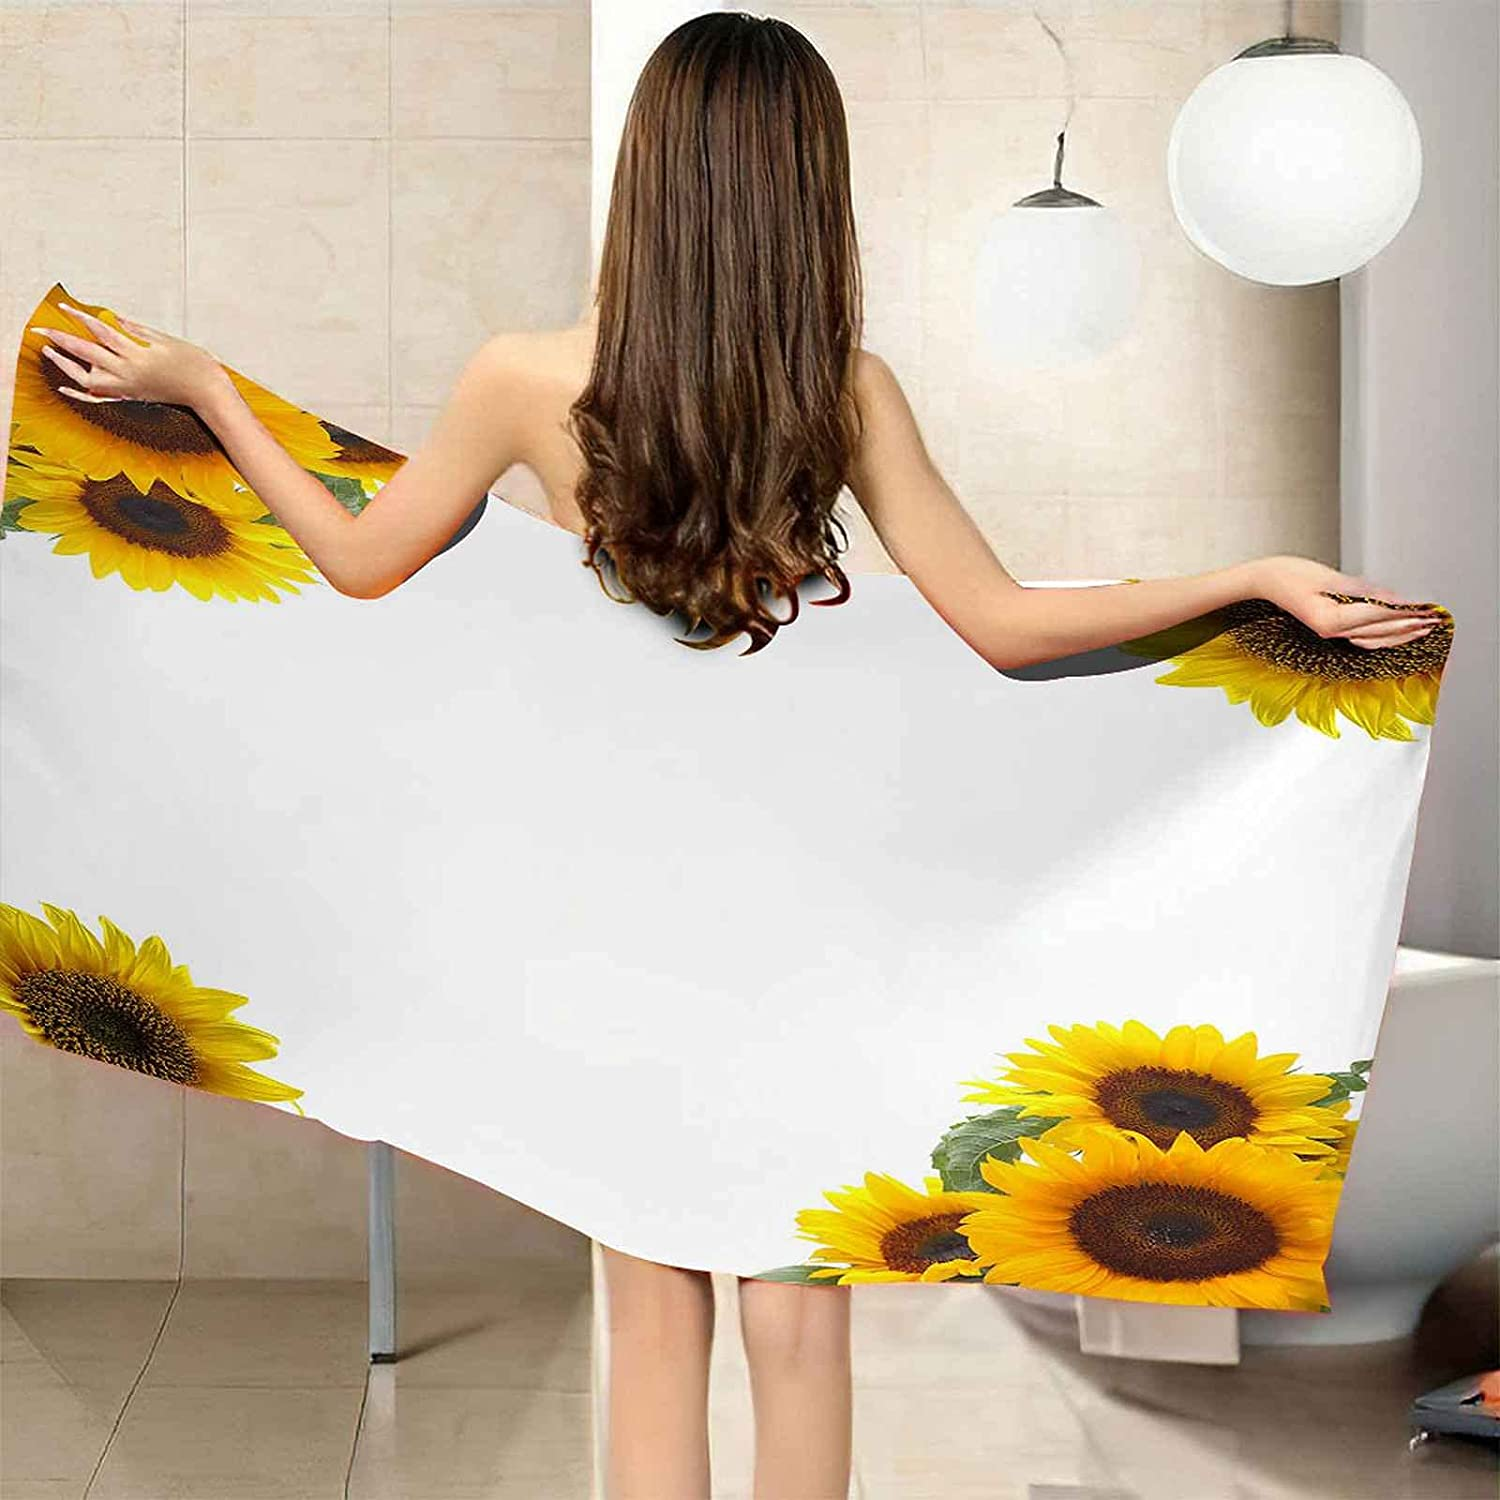 TFXDBZ Selling and selling Beach Towels for Adults Towel Sand Free Portland Mall Microfiber